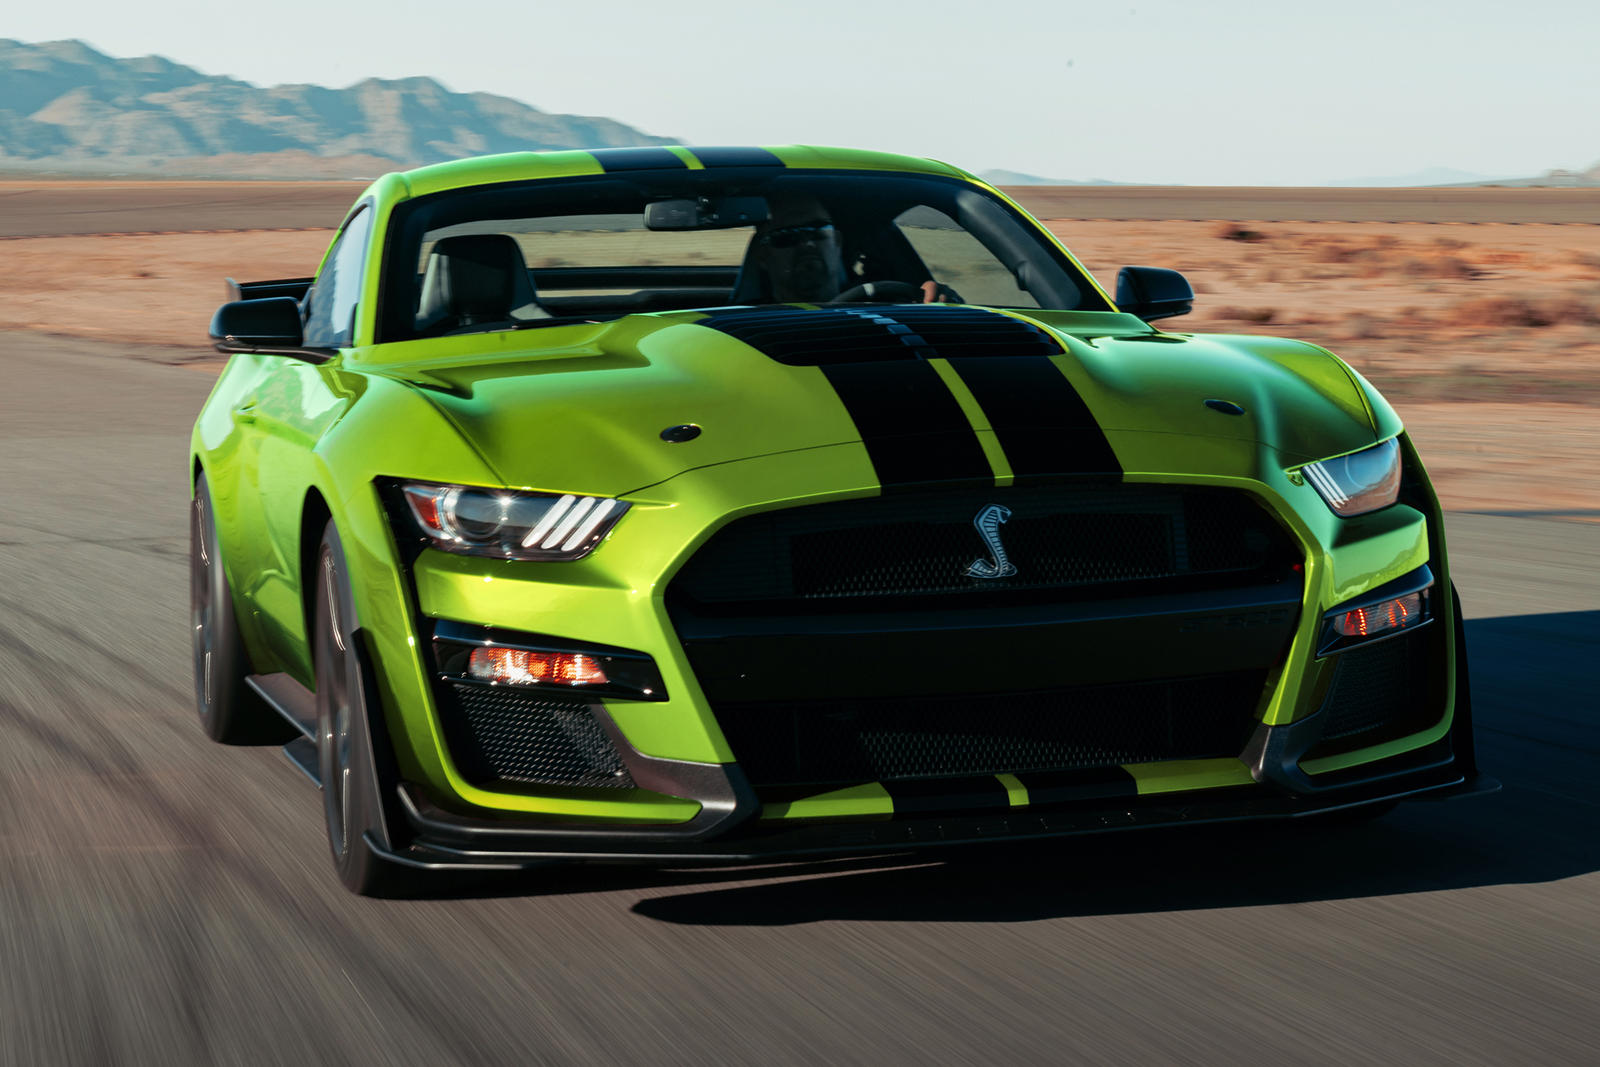 2020 Ford Mustang Shelby GT500 Gets New Retro-Inspired Color Options - CarBuzz